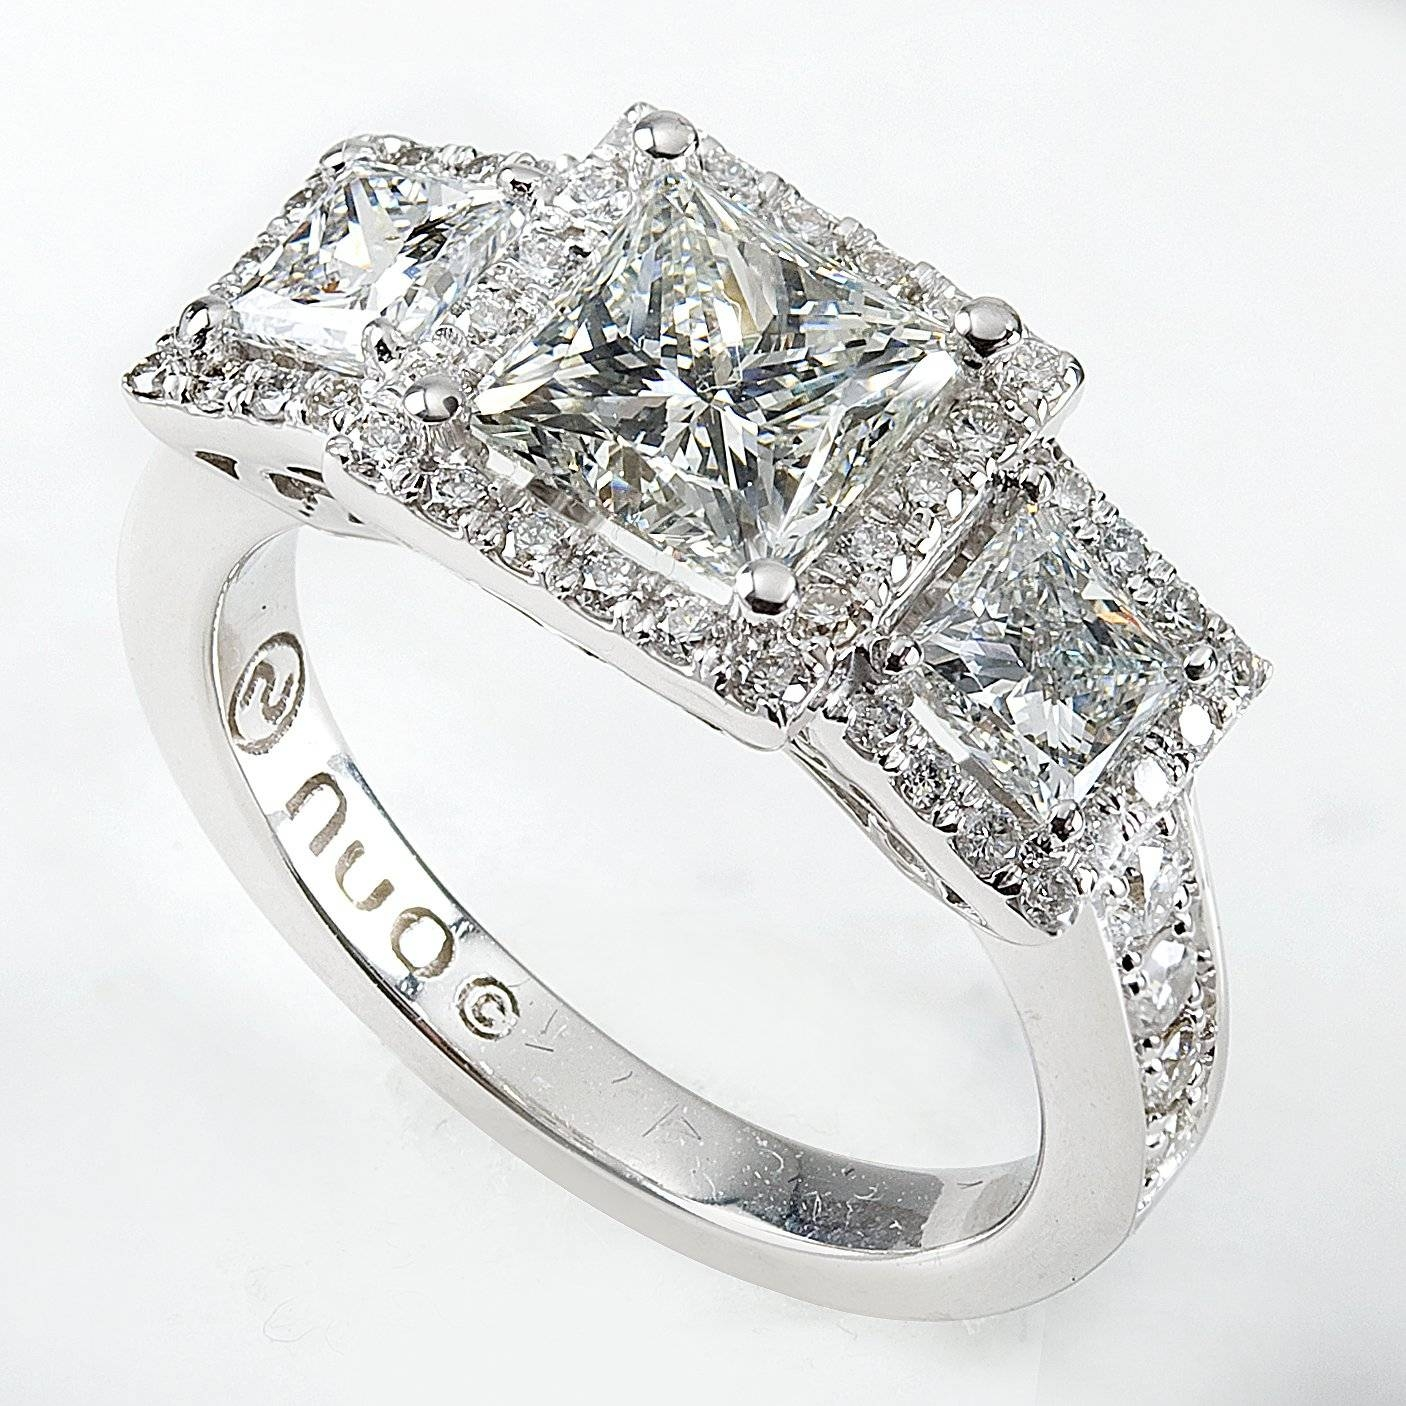 ring rings engagement tacori ht jewellery platinum crescent diamond pr cut reverse princess